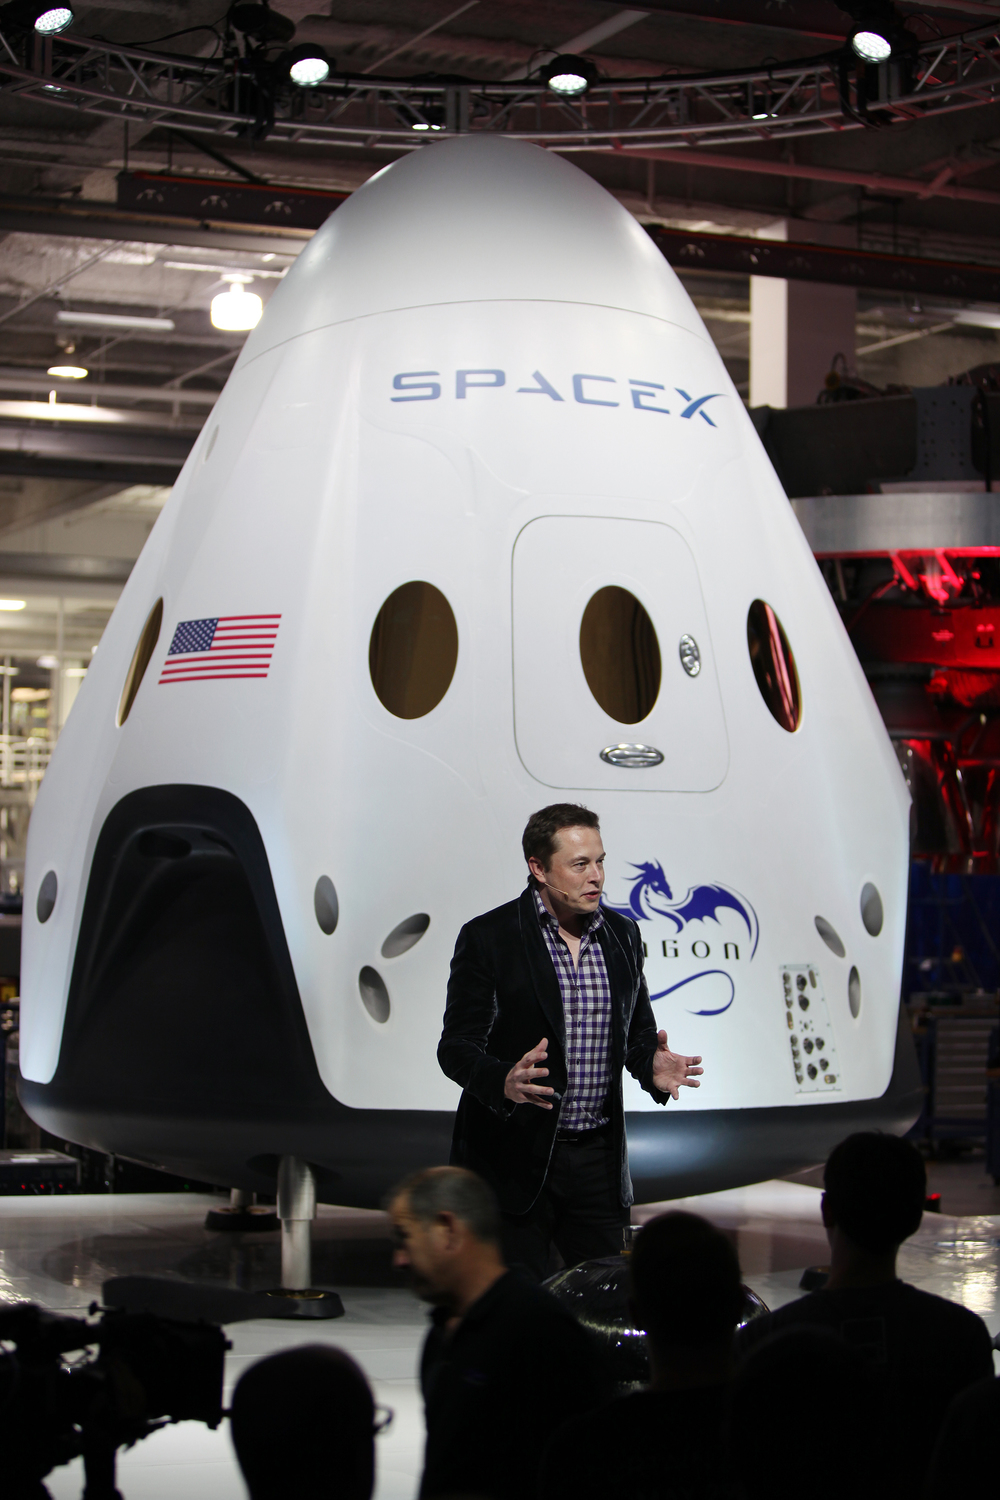 SpaceIL, and Israeli team competing in Google's moon race, has signed a launch deal with the Elon Musk-owned SpaceX (pictured) to launch a rocket to the moon in 2017. Credit: Wikimedia Commons.